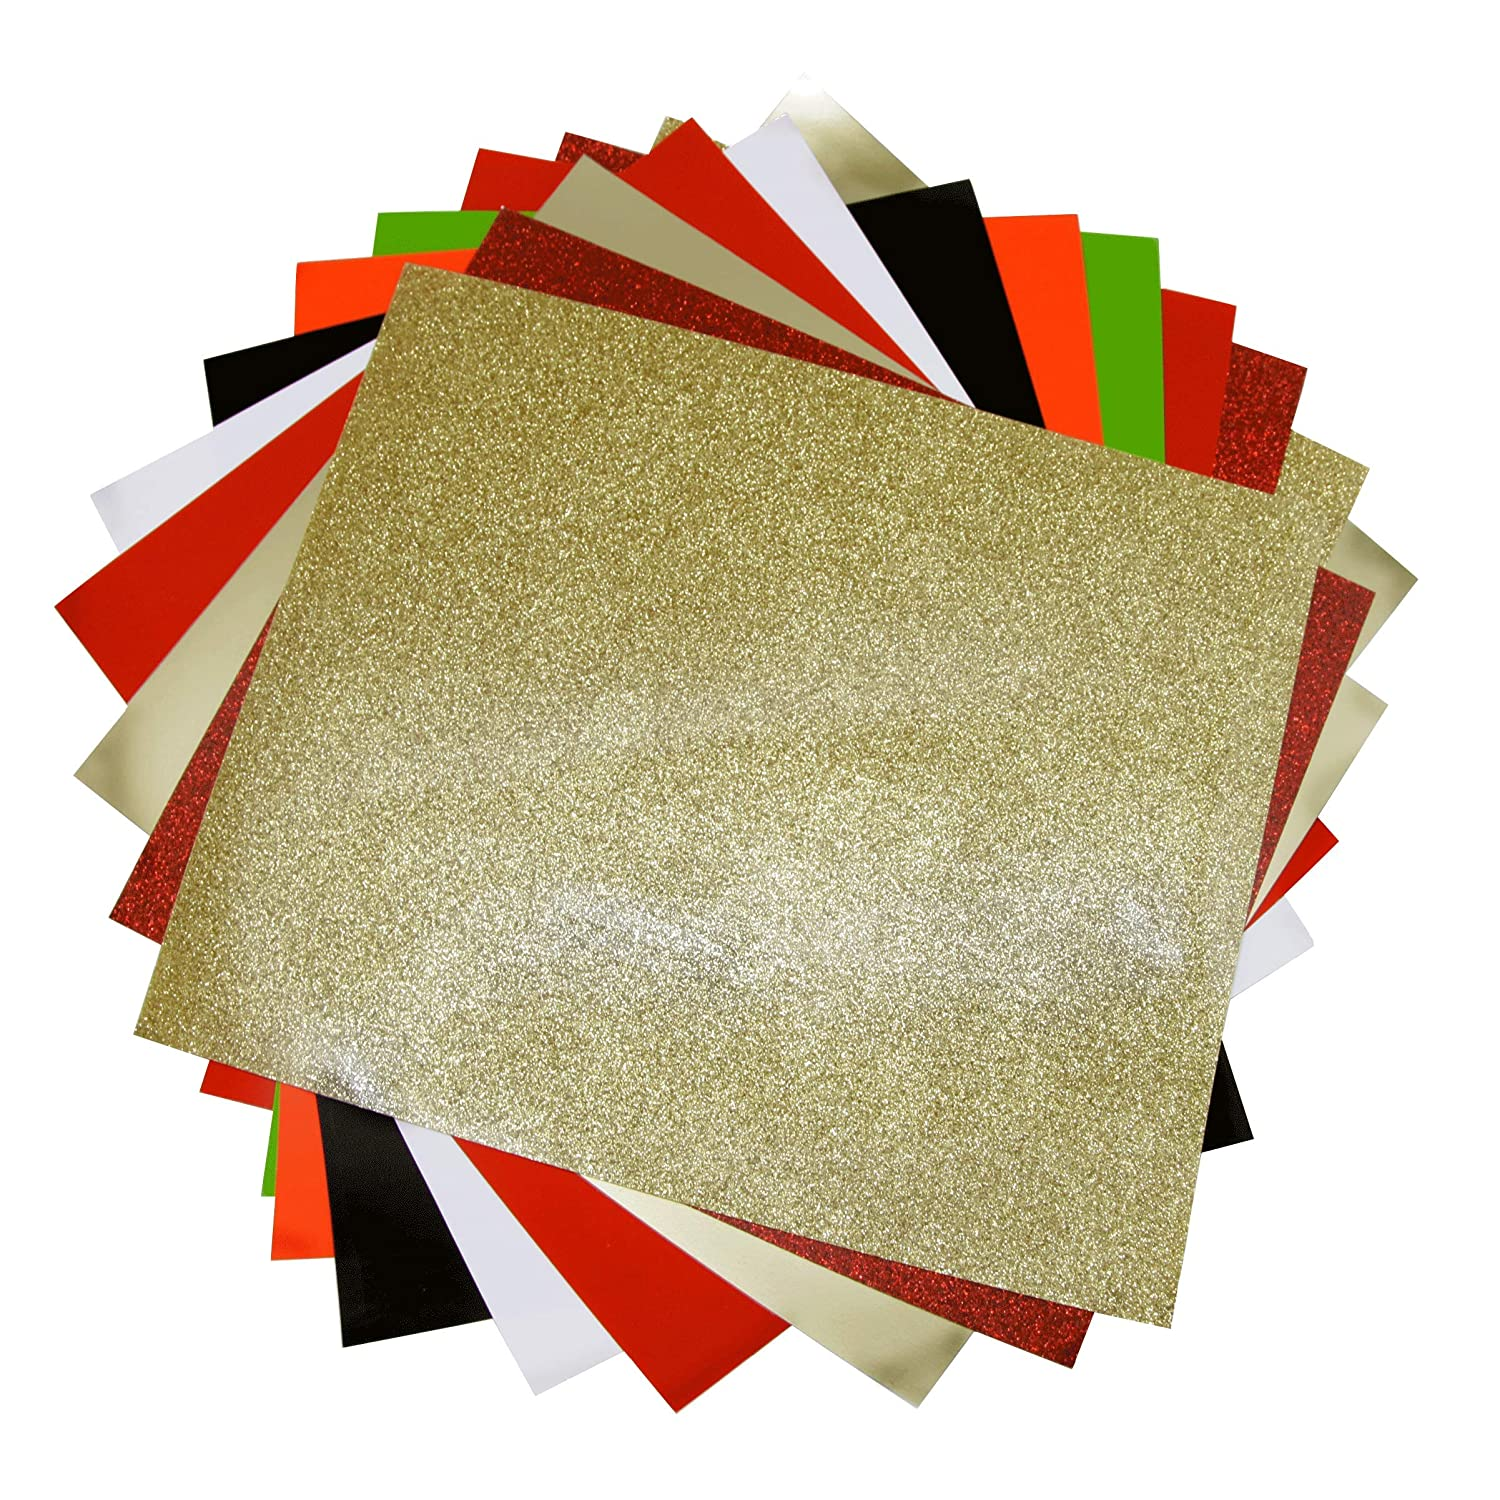 Craftweeks HTV RED & GOLD THEME (10 x 12, 12 pack 8 assorted colors w/ Glitter) Heat Transfer Vinyl Sheet Bundle for DIY Gift Tees, Matching Clothes Outfits for Twins, Family, Couples Fumikr Co. Ltd.